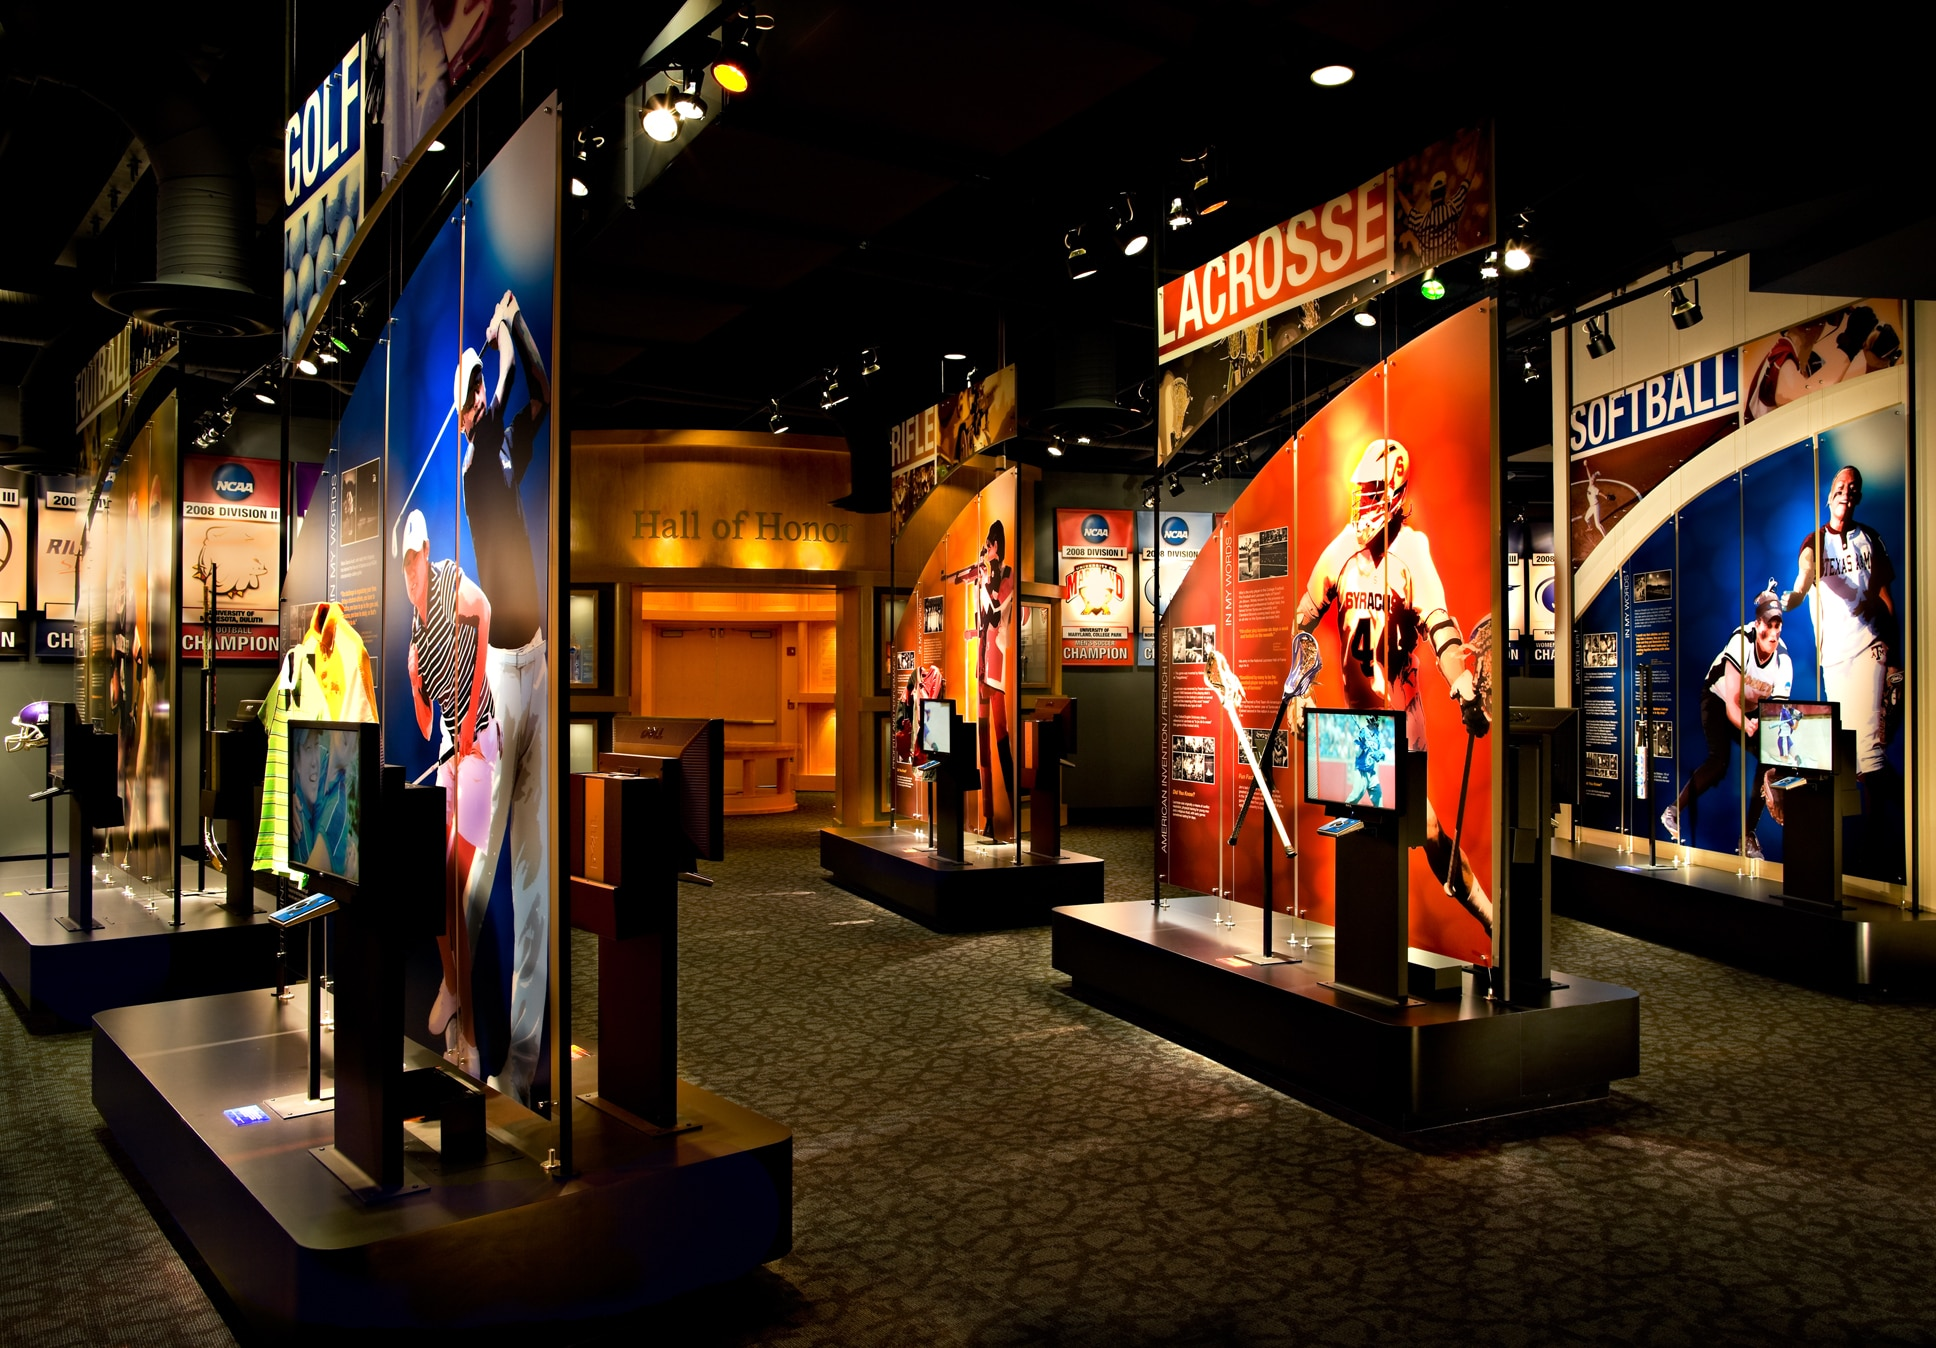 Memorabilia and exhibits from the NCAA Hall of Champions (Courtesy of VisitIndy.com)